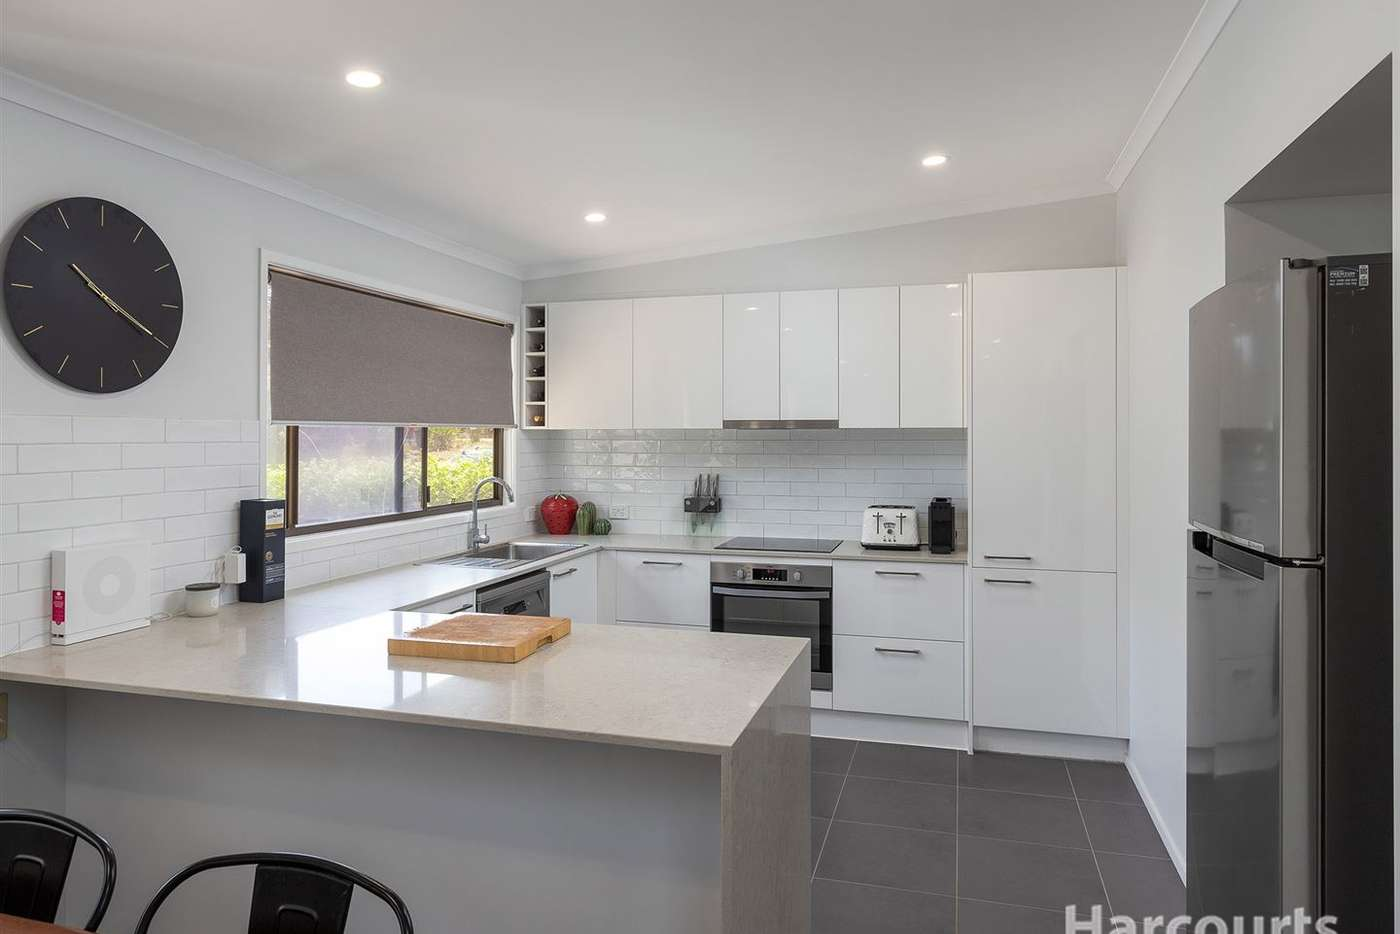 Main view of Homely house listing, 4 Elgata St, Petrie QLD 4502